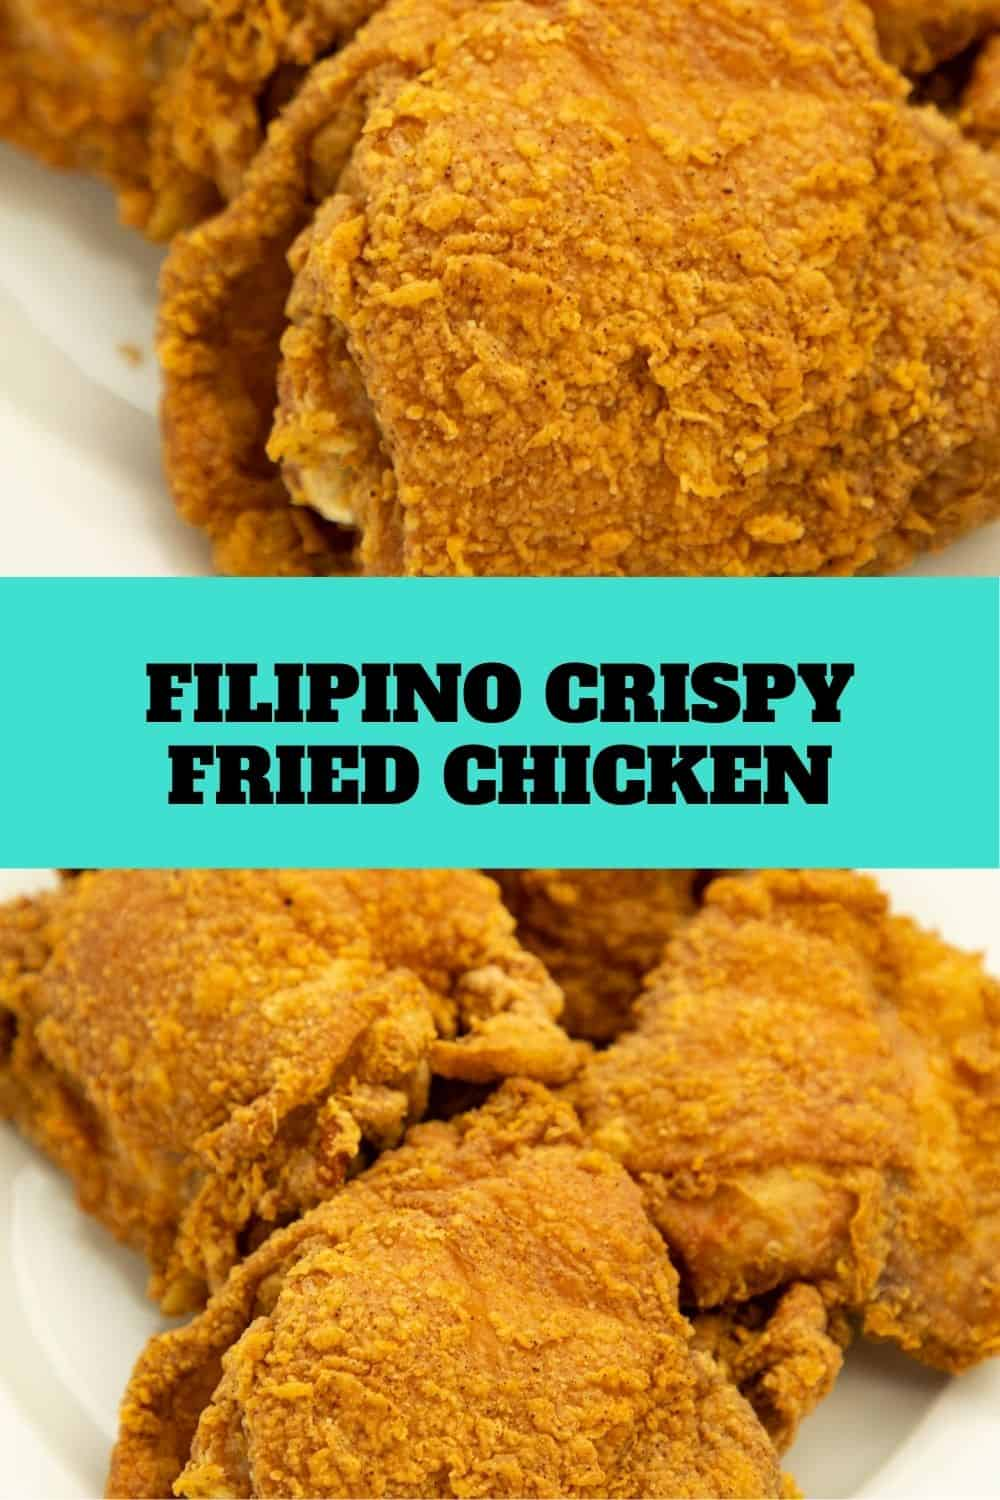 Tasty and delicious. This Filipino crispy fried chicken is one of our family favorites. Fish sauce adds flavor to this awesome dish. #filipinofriedchicken #filipinorecipes #chickenrecipes via @seasiderecipes